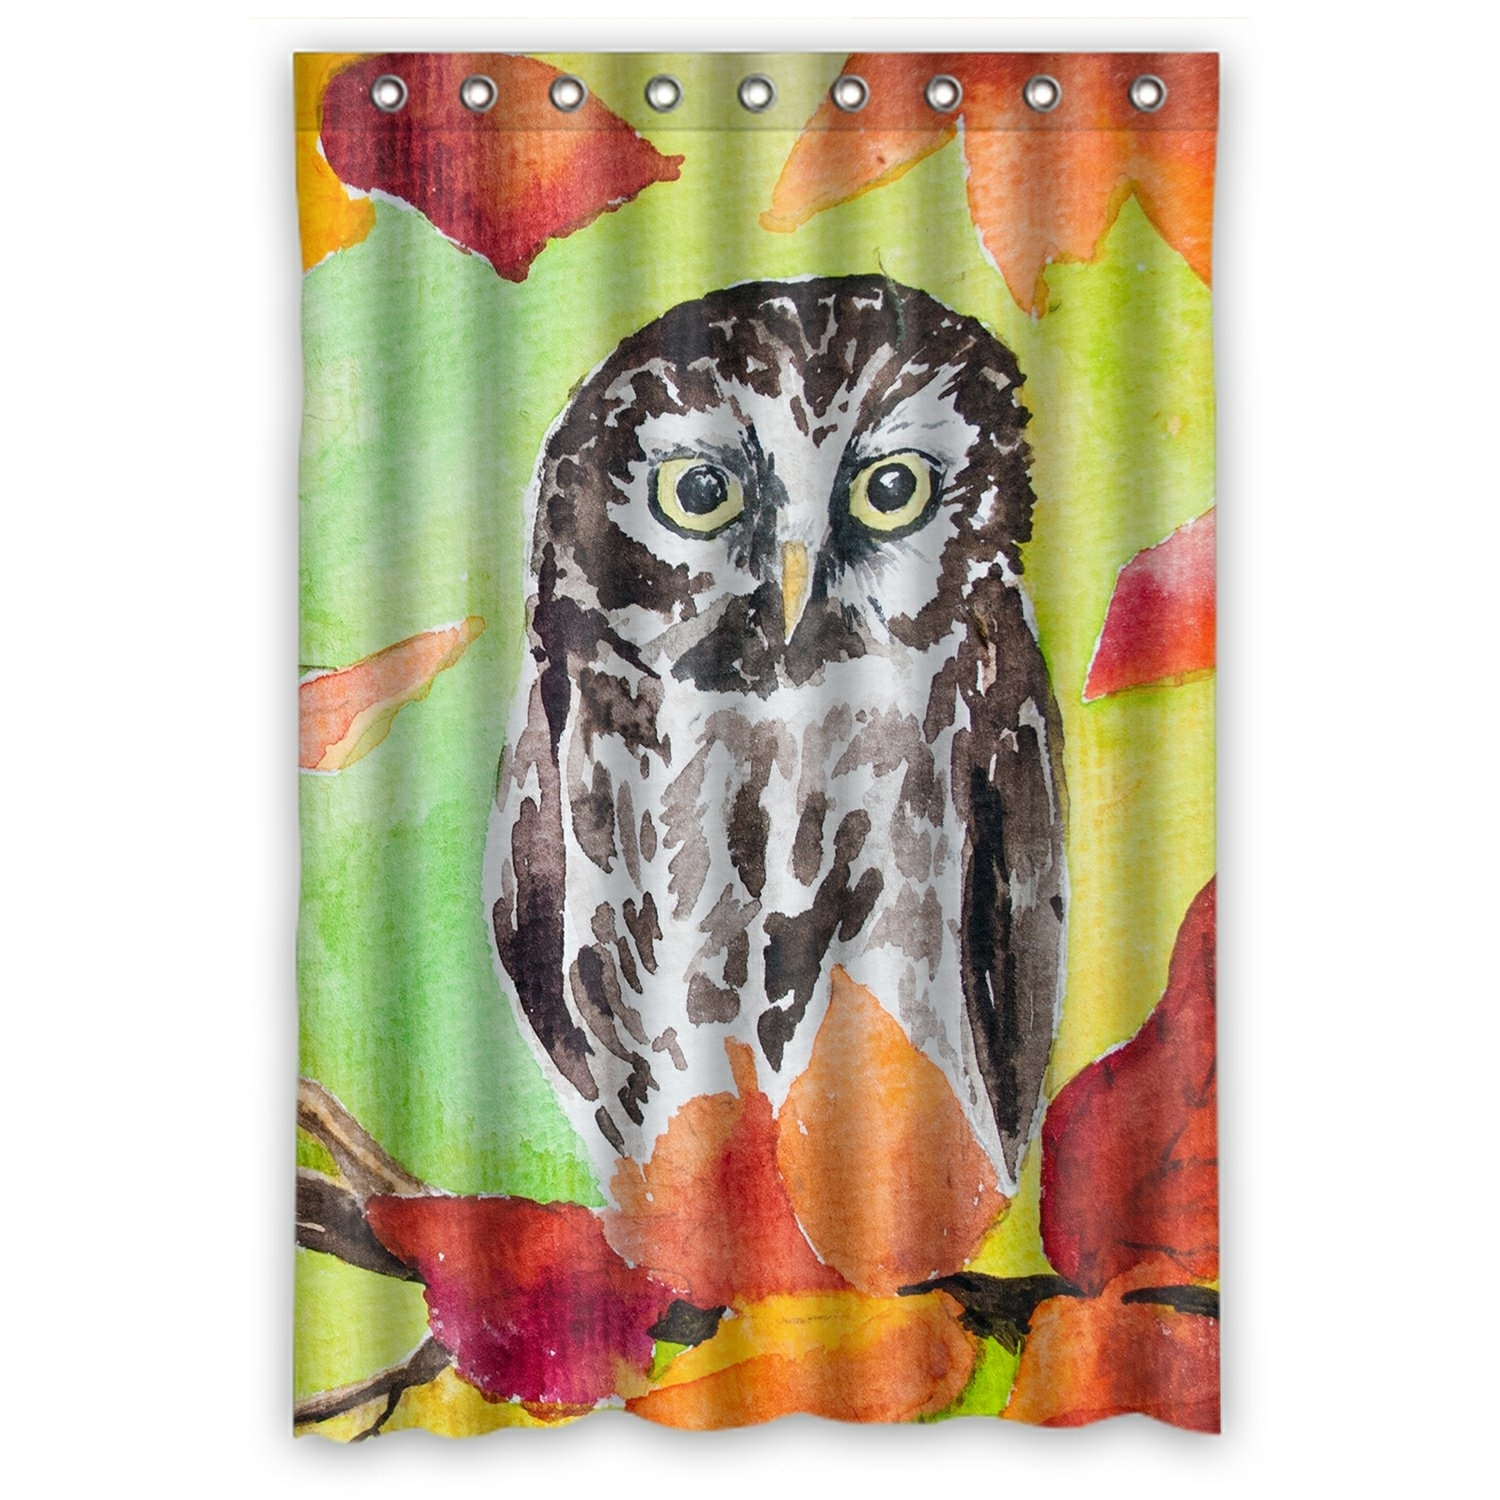 Oil Painting Landscape Shower Curtain, Owl Sitting in the Autumn Forest Tree Shower Curtain 48x72 inch